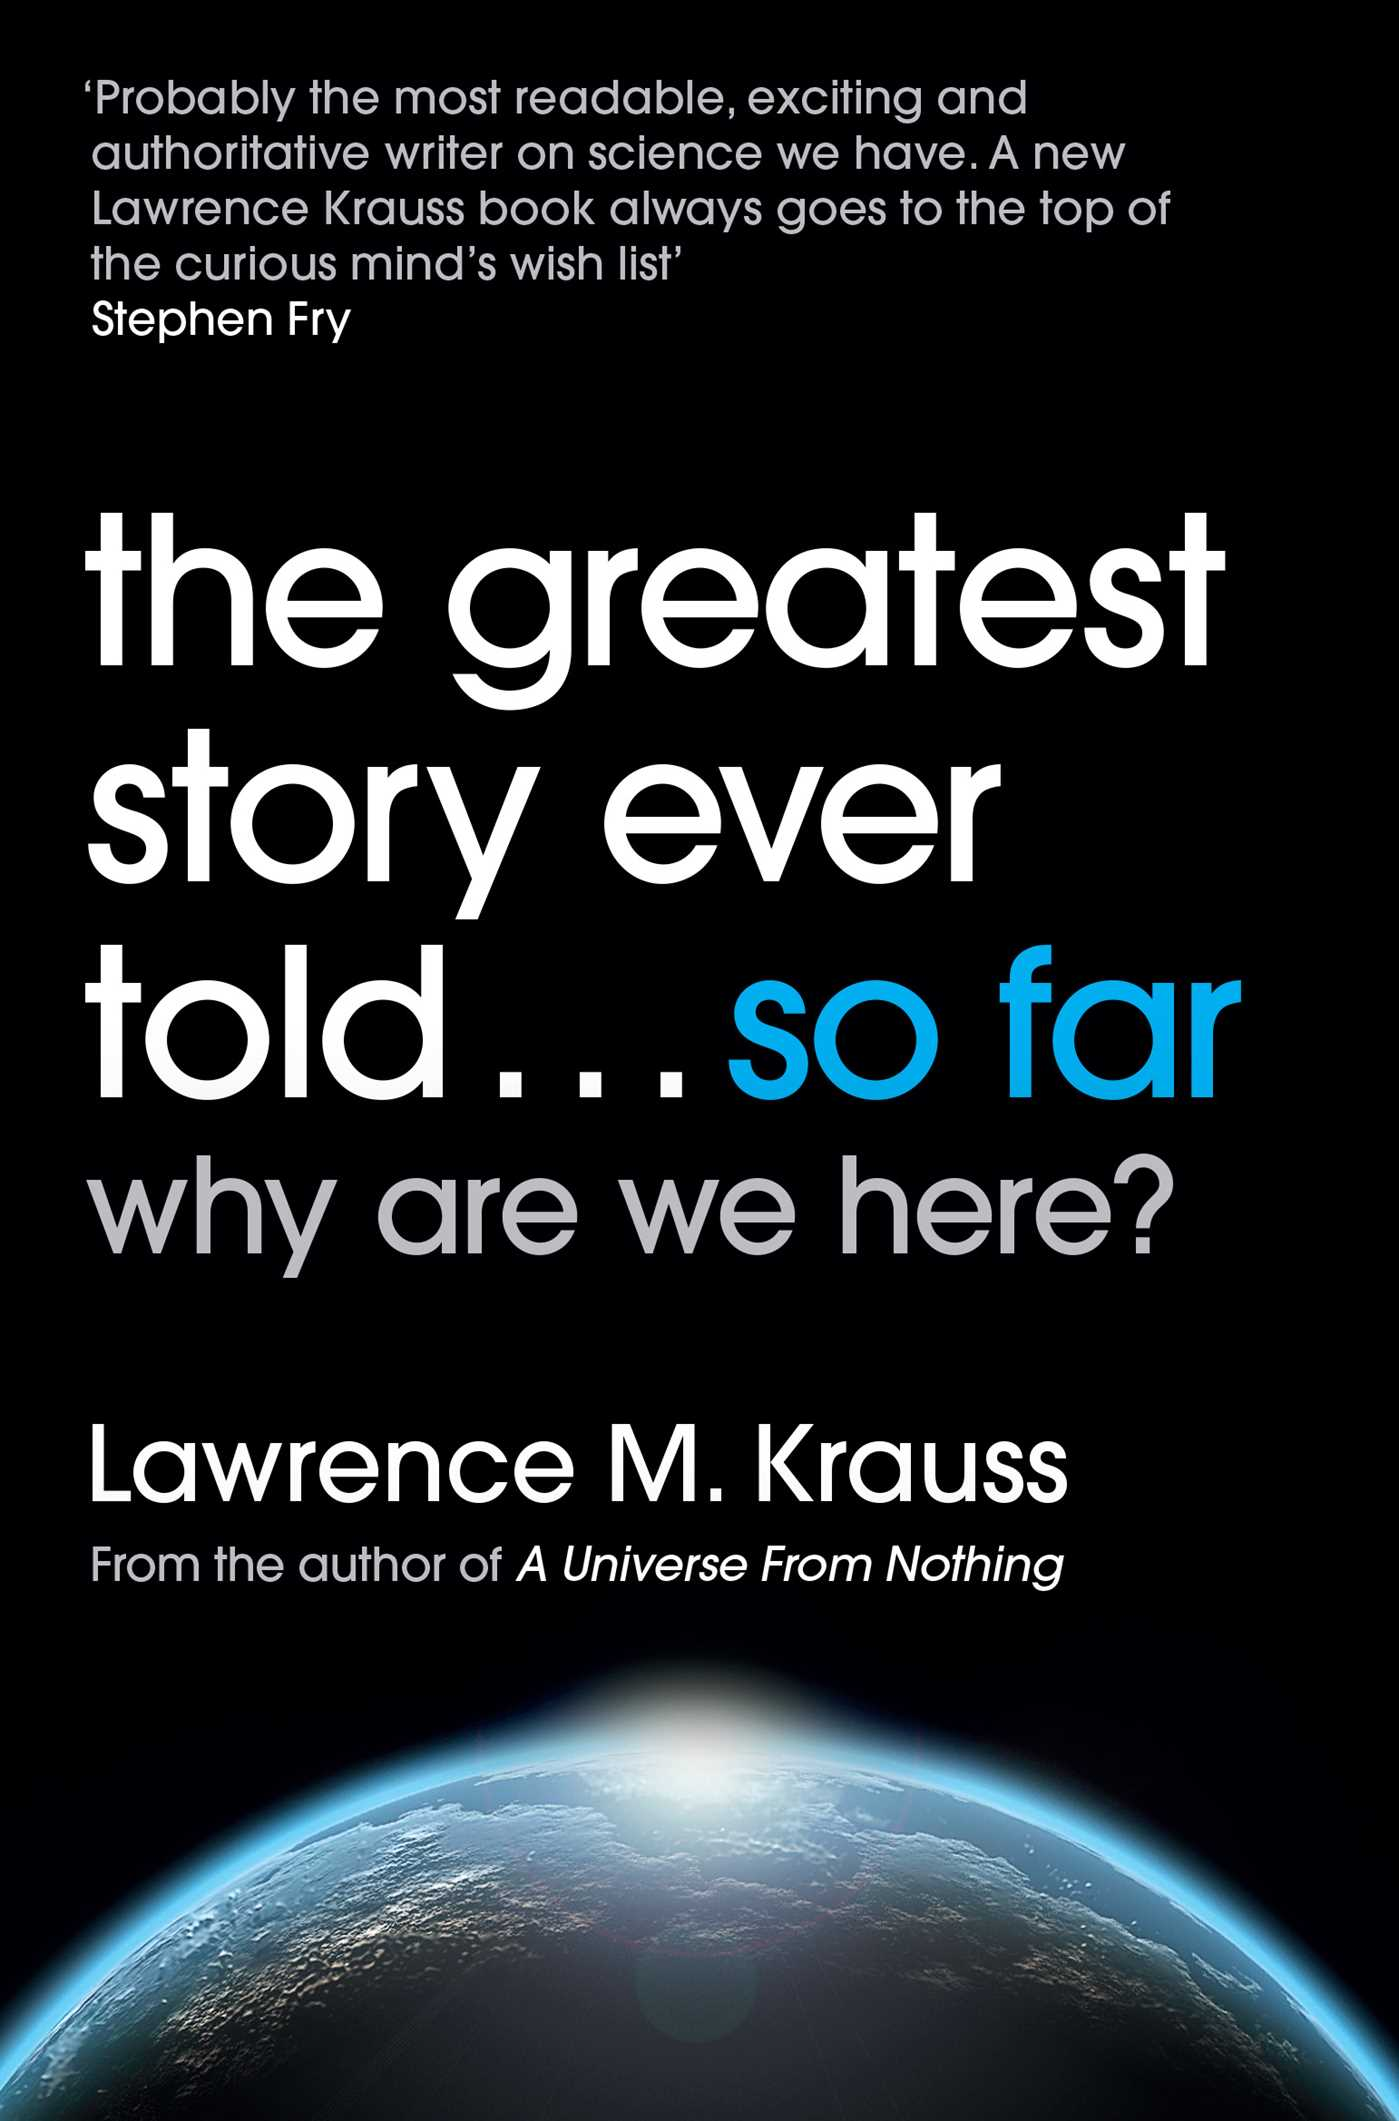 The greatest story ever told far book by lawrence krauss the greatest story ever told so far 9781471138553 hr fandeluxe Choice Image